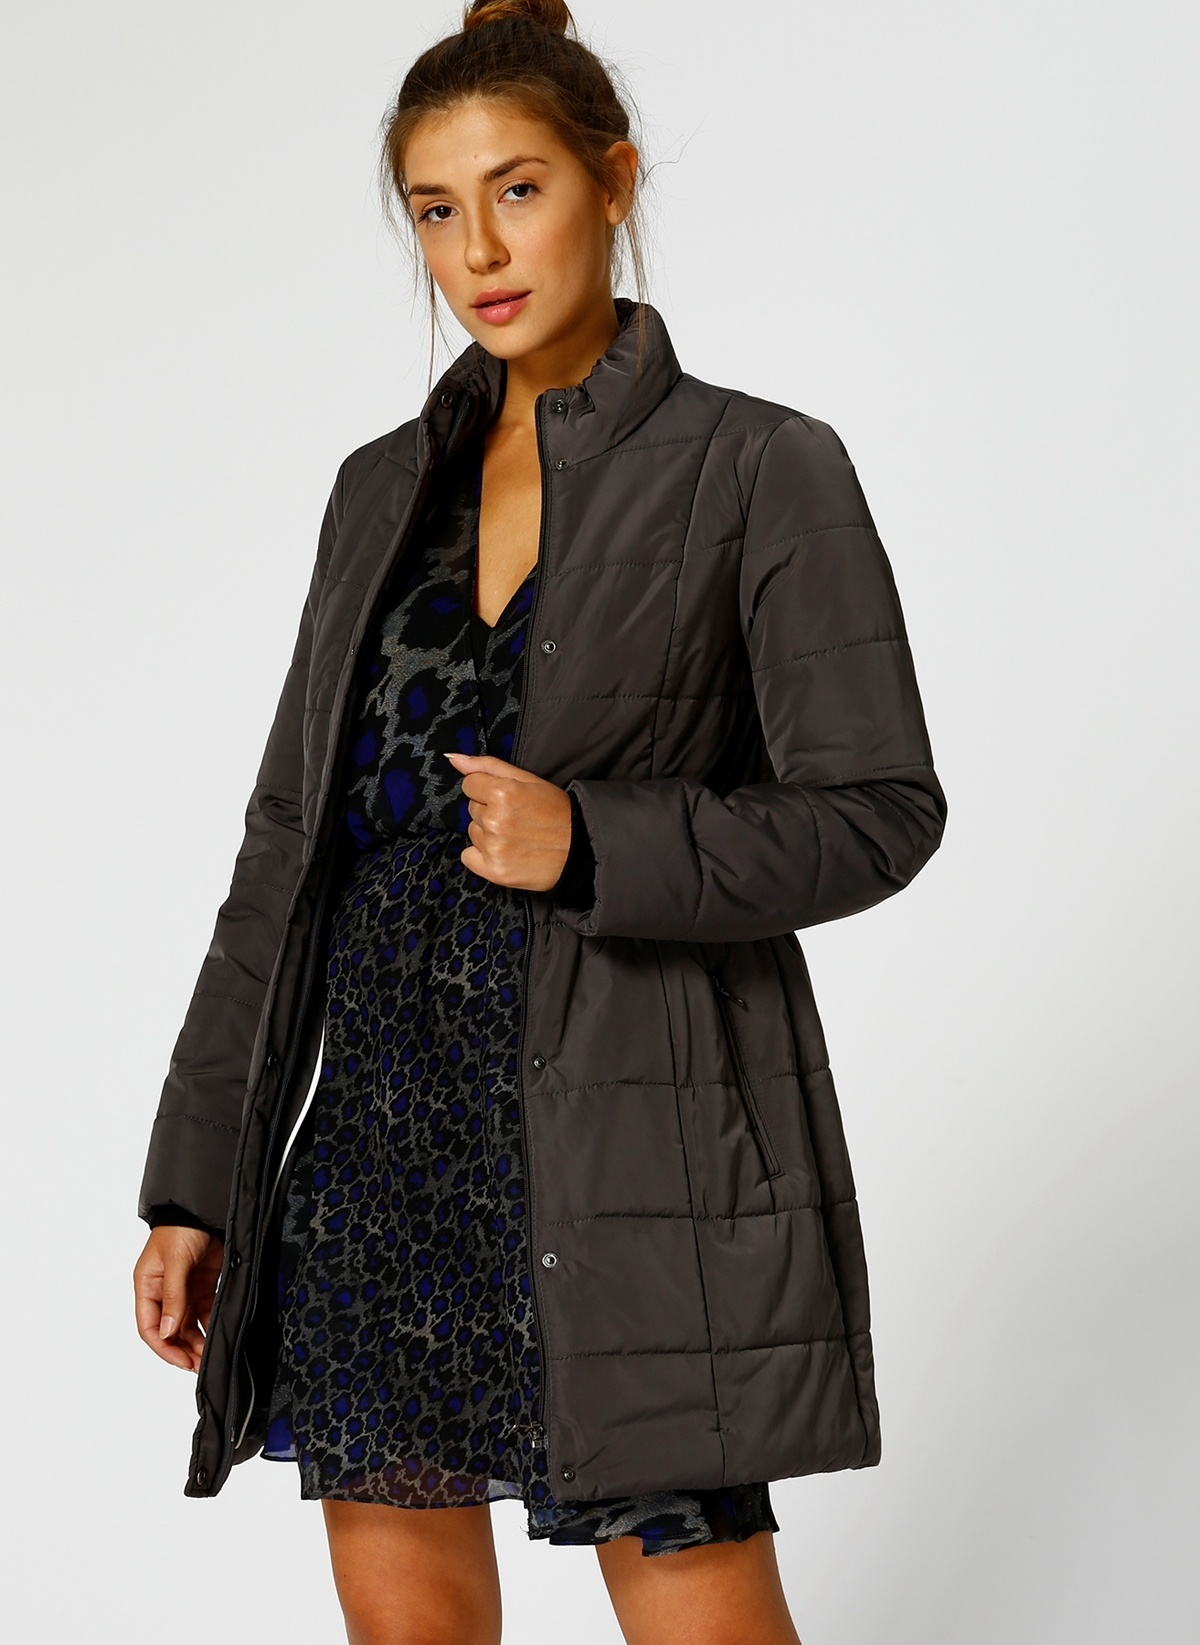 North Of Navy Mont 28-lory North Of Navy Mont – 209.99 TL